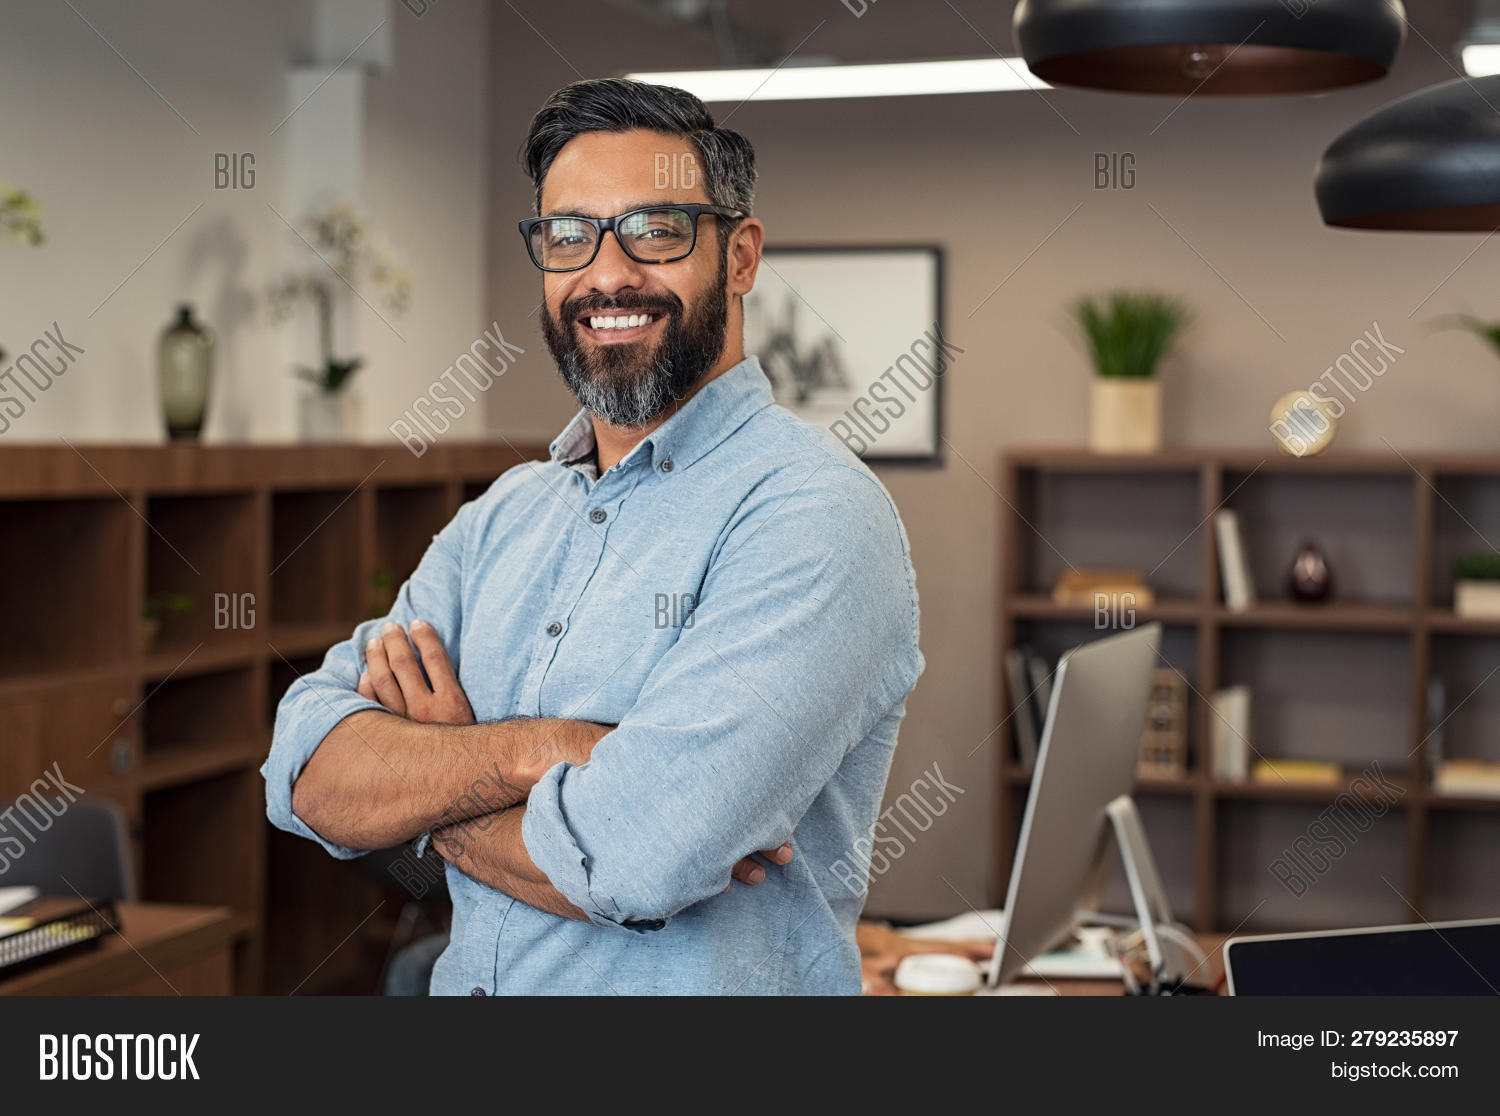 30s,beard,boss,business,business casual,business man,businessman,casual,casual business,casual man,corporate,creative,creative office,crossed arms,eastern,entrepreneur,executive,eyeglasses,happy,hispanic,indian man,latin,leader,leadership,looking,looking at camera,manager,mature,middle,middle eastern,mix race,modern office,multiethnic,office,people,portrait,professional,proud,reliability,satisfaction,satisfied,smile,standing,stylish,success,successful,successful businessman,wearing eye glasses,wearing glasses,work